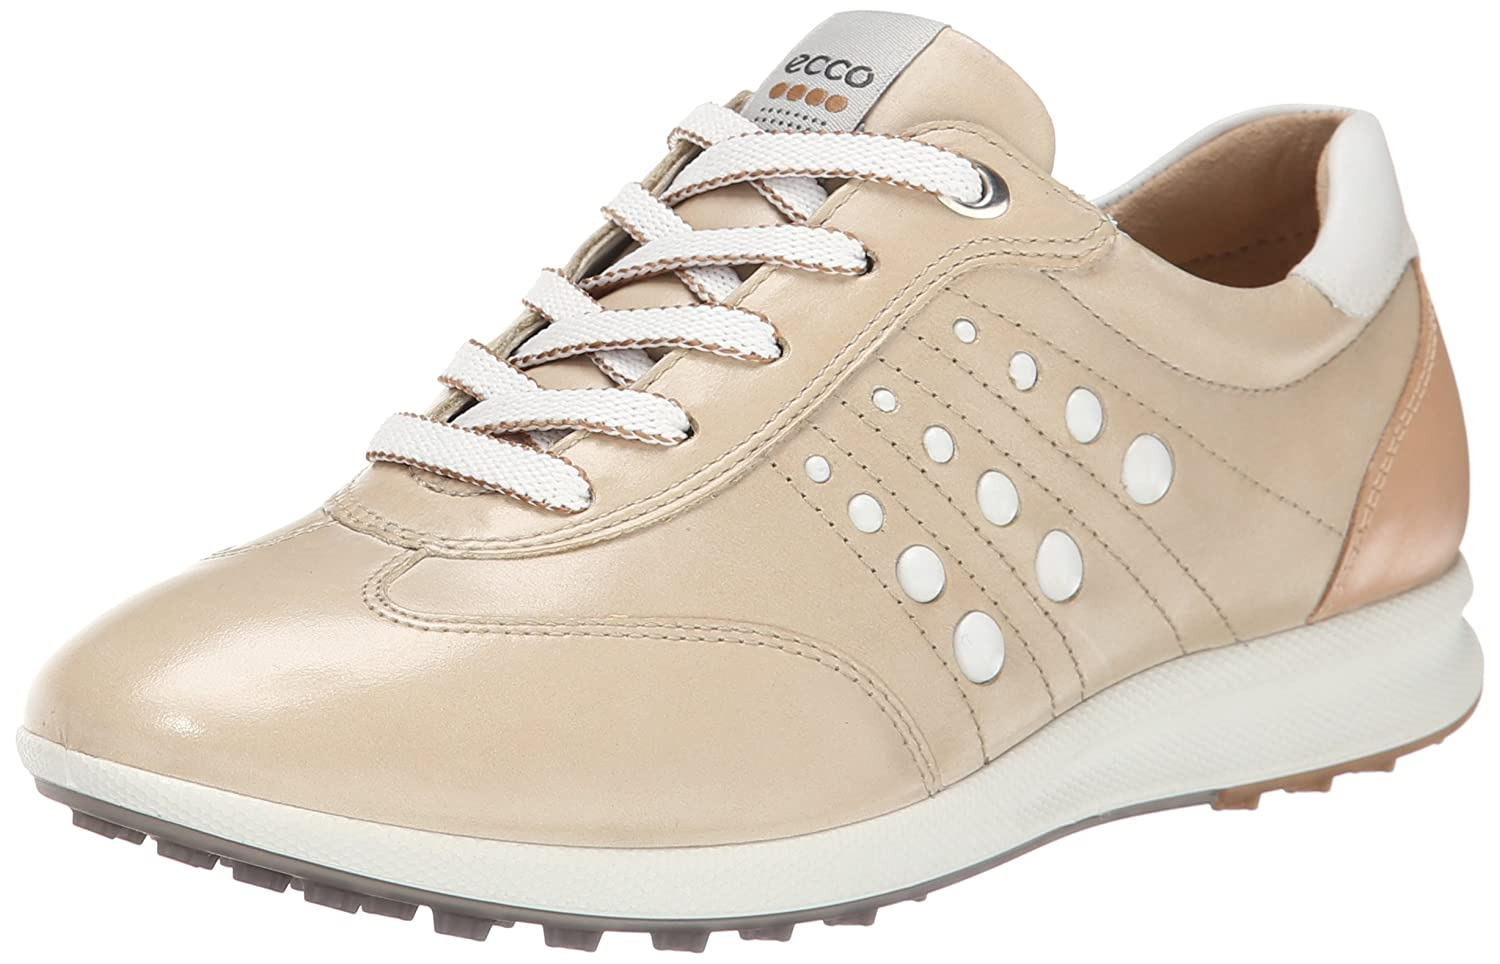 ECCO Women's Street Evo One Luxe-w B00LI21S7I 40 EU/9-9.5 M US Oyster/Lion